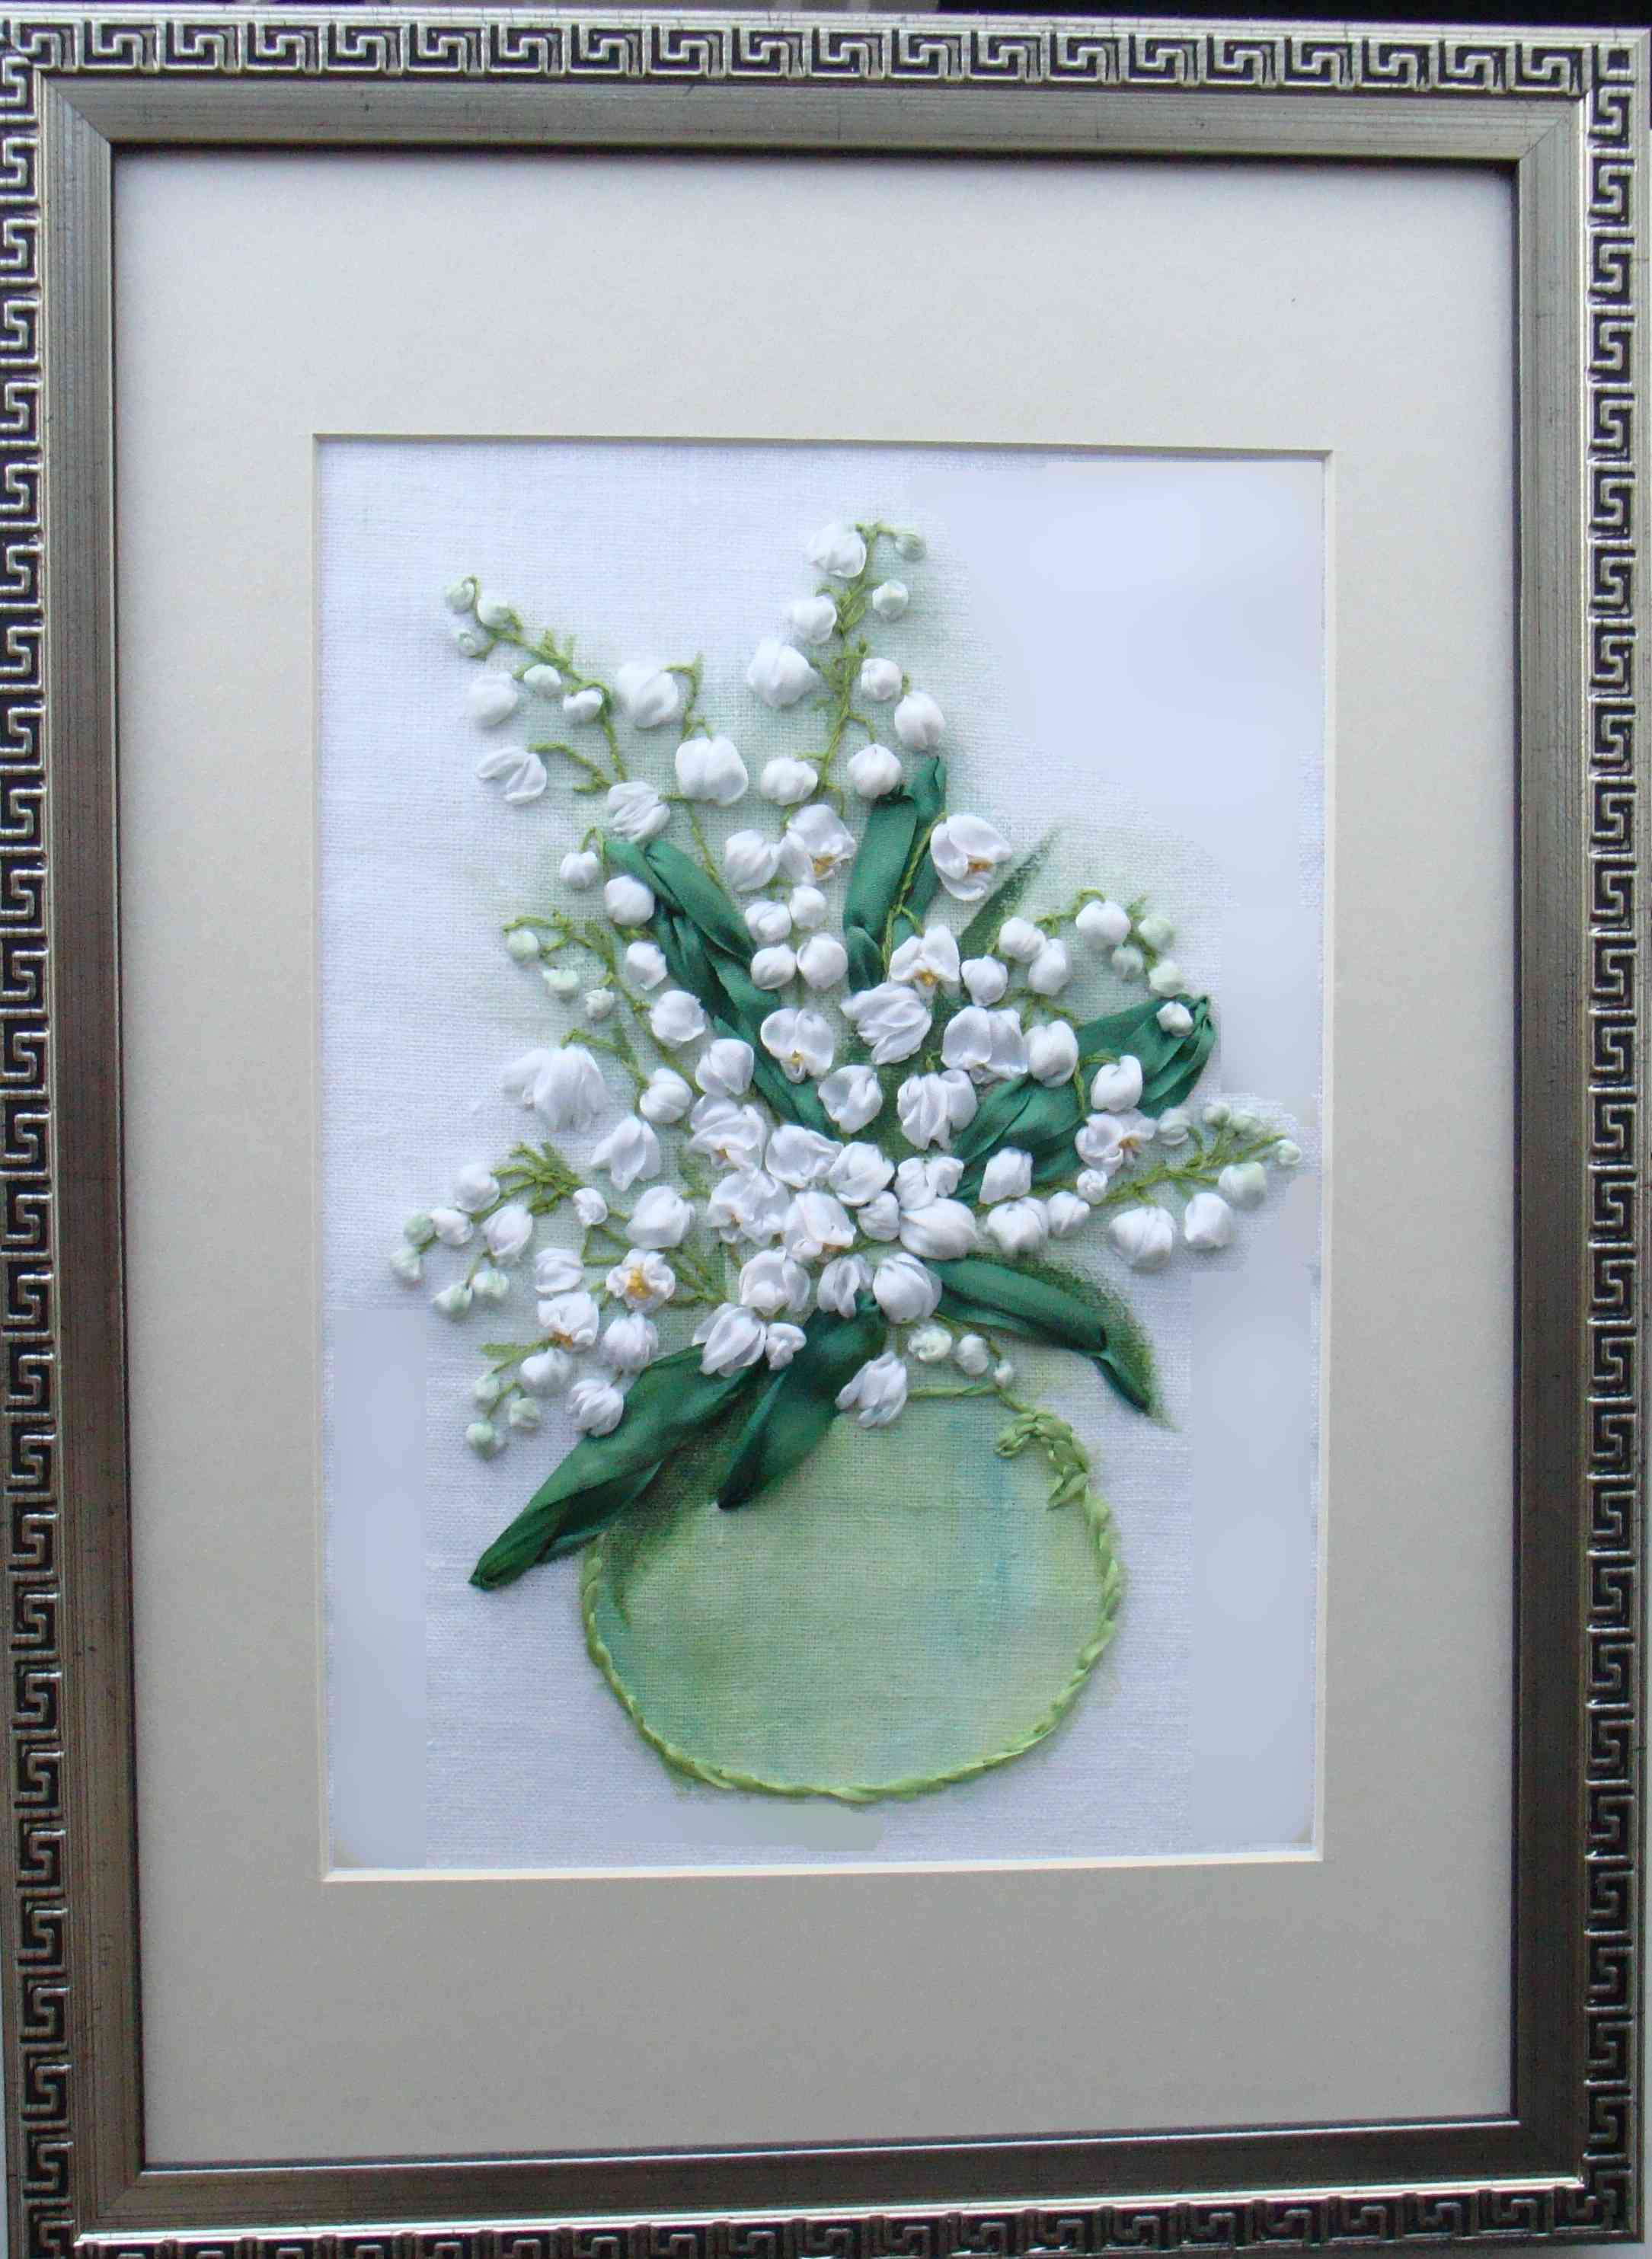 Lilies of the valley embroidery kit lilies of valley in silk ribbon embroidery tatiana popova embroidery designs ribbon embroidery kits izmirmasajfo